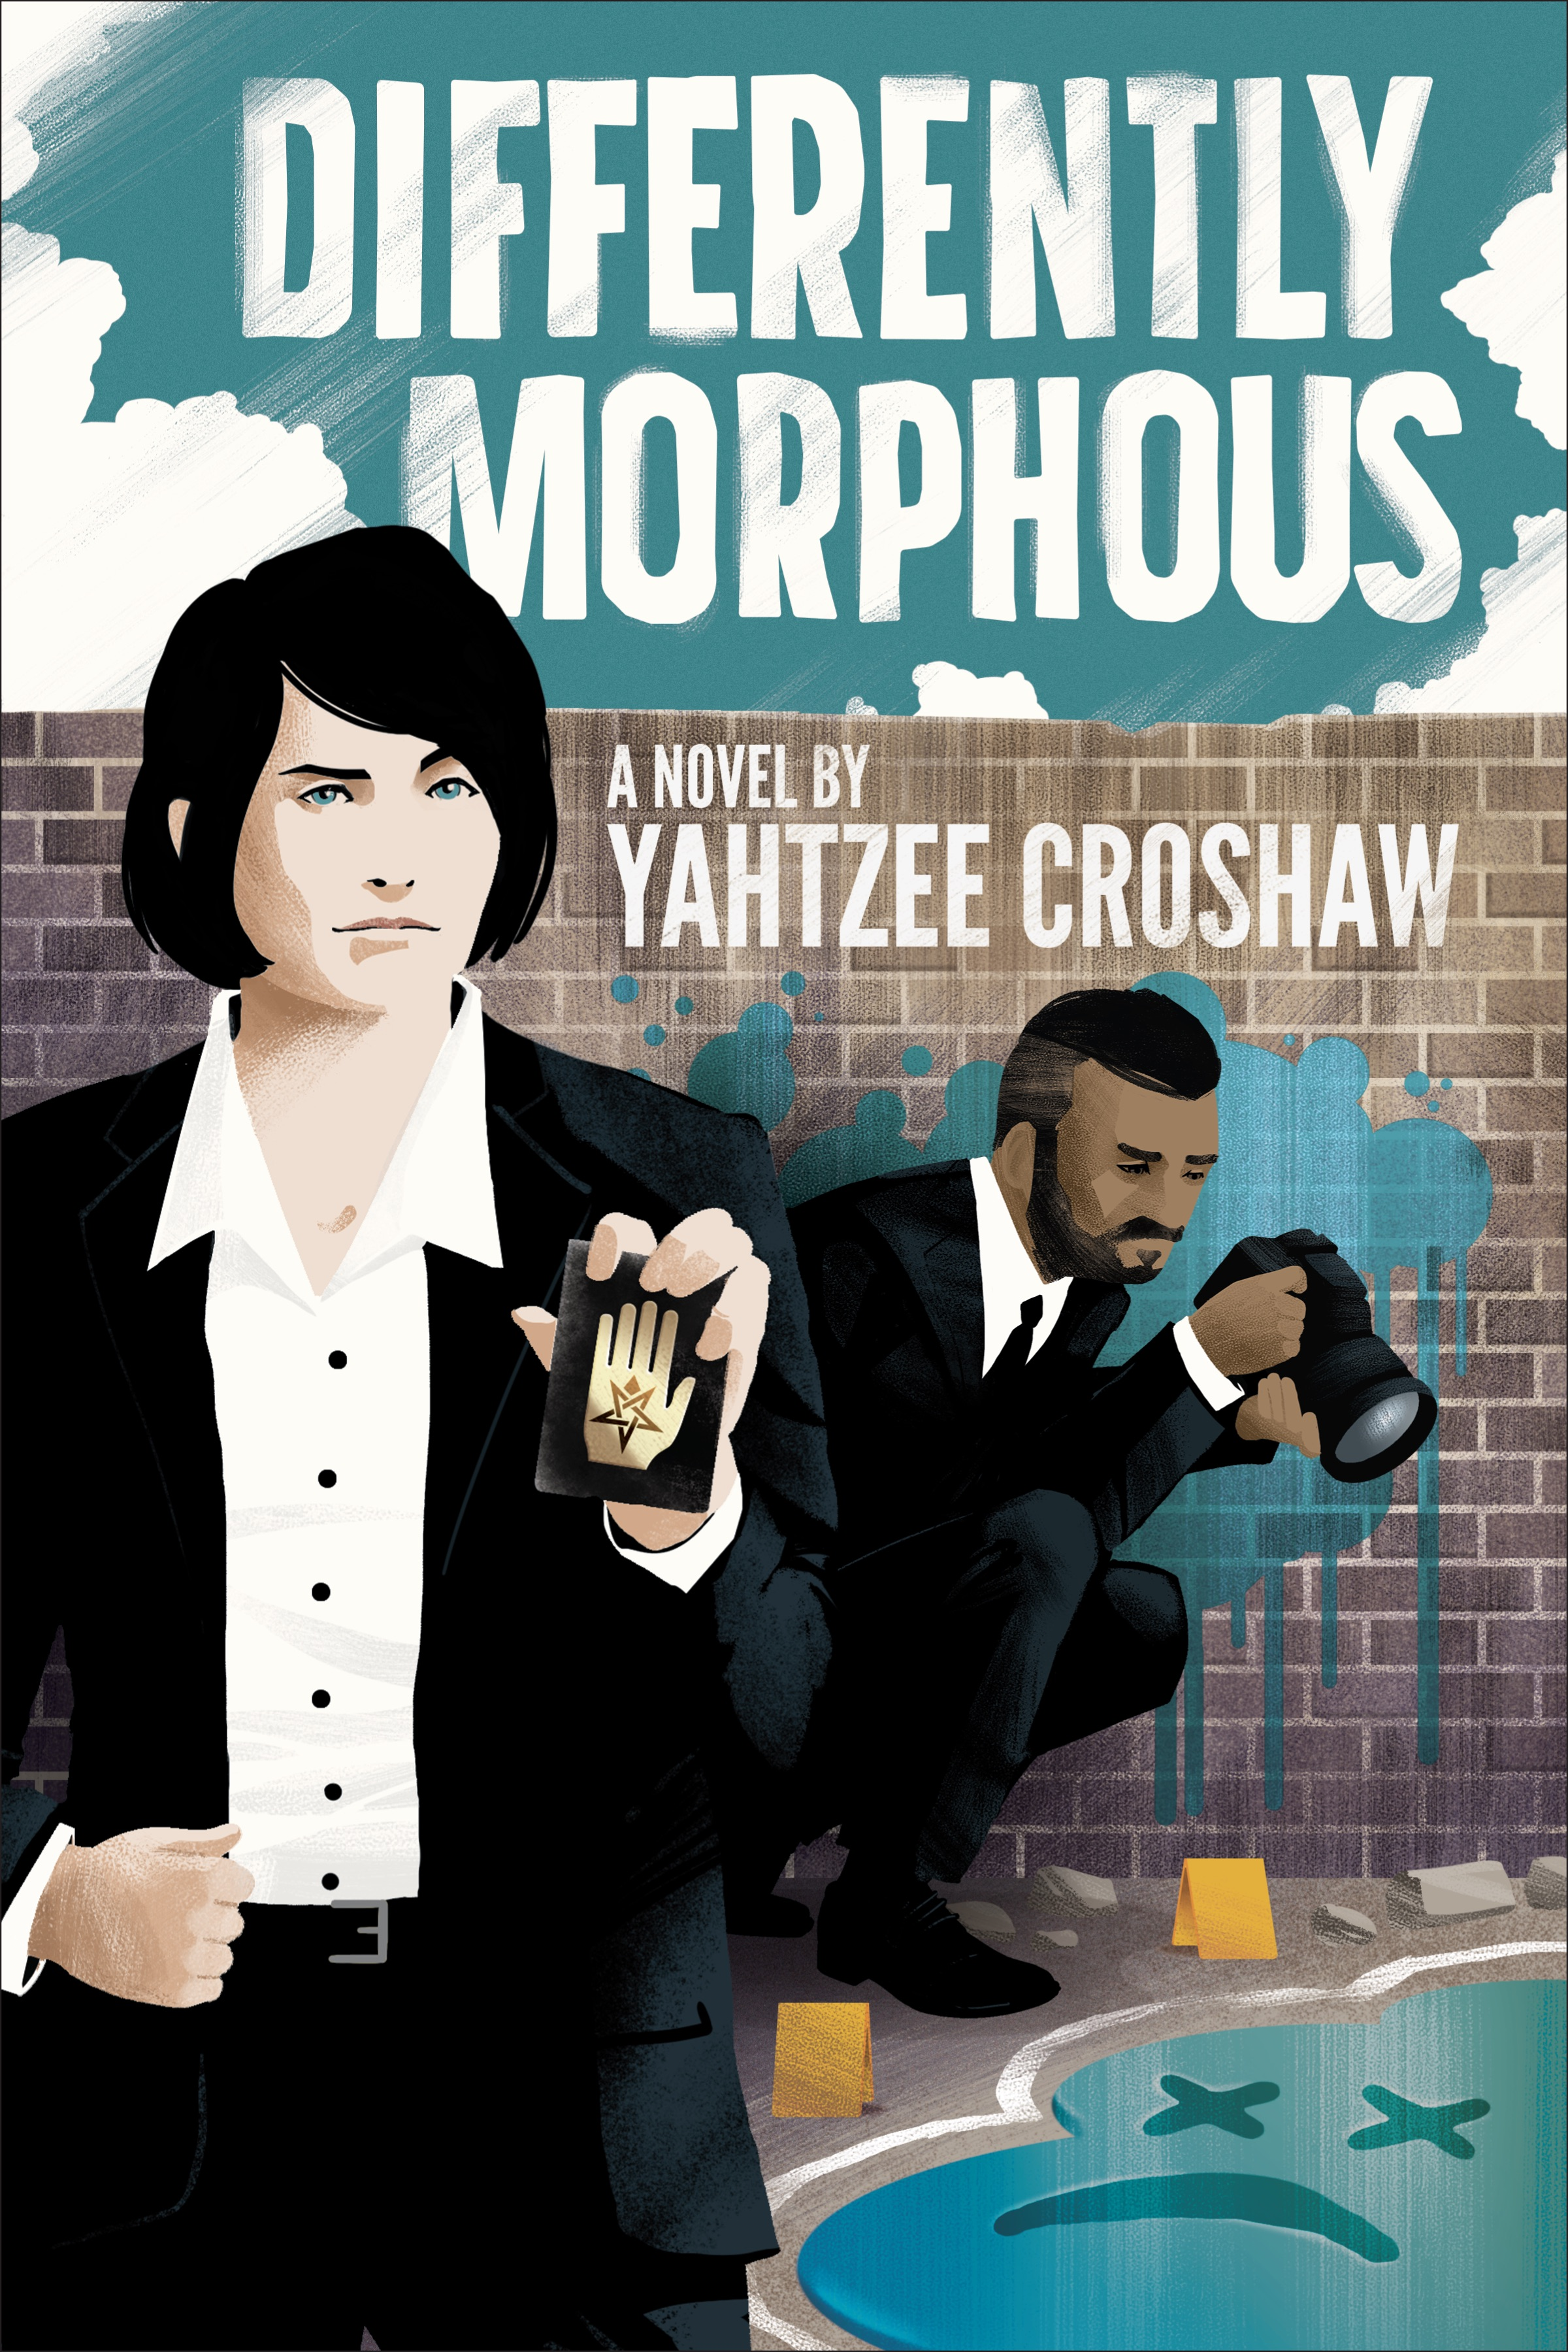 [EXCLUSIVE] Dark Horse announces absurd tale 'Differently Morphous' from Yahtzee Croshaw